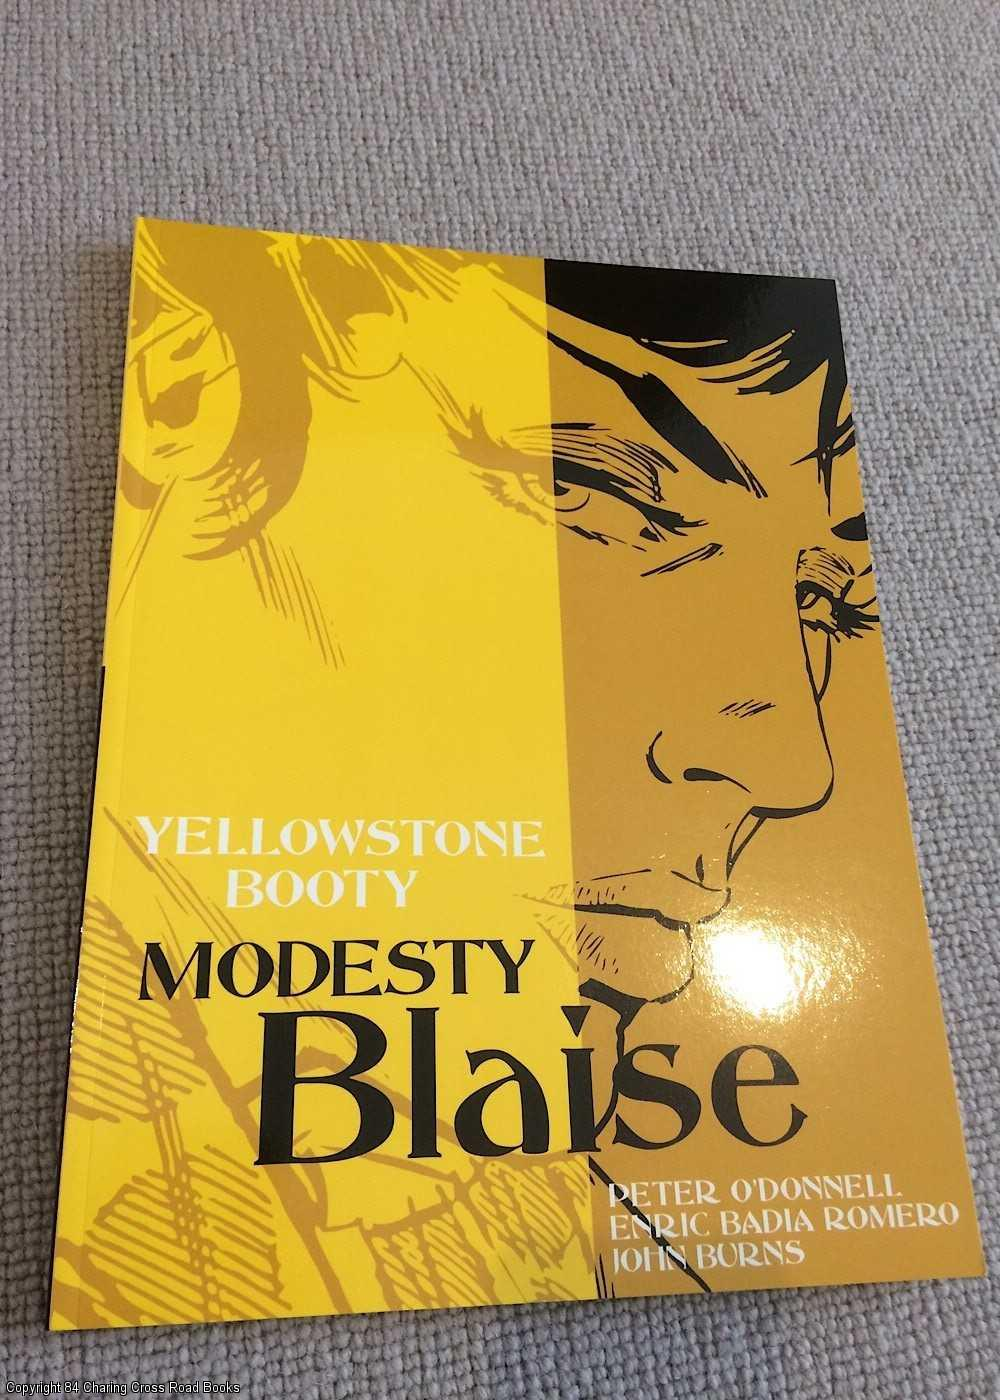 PETER O'DONNELL; JOHN BURNS - Modesty Blaise: Yellowstone Booty